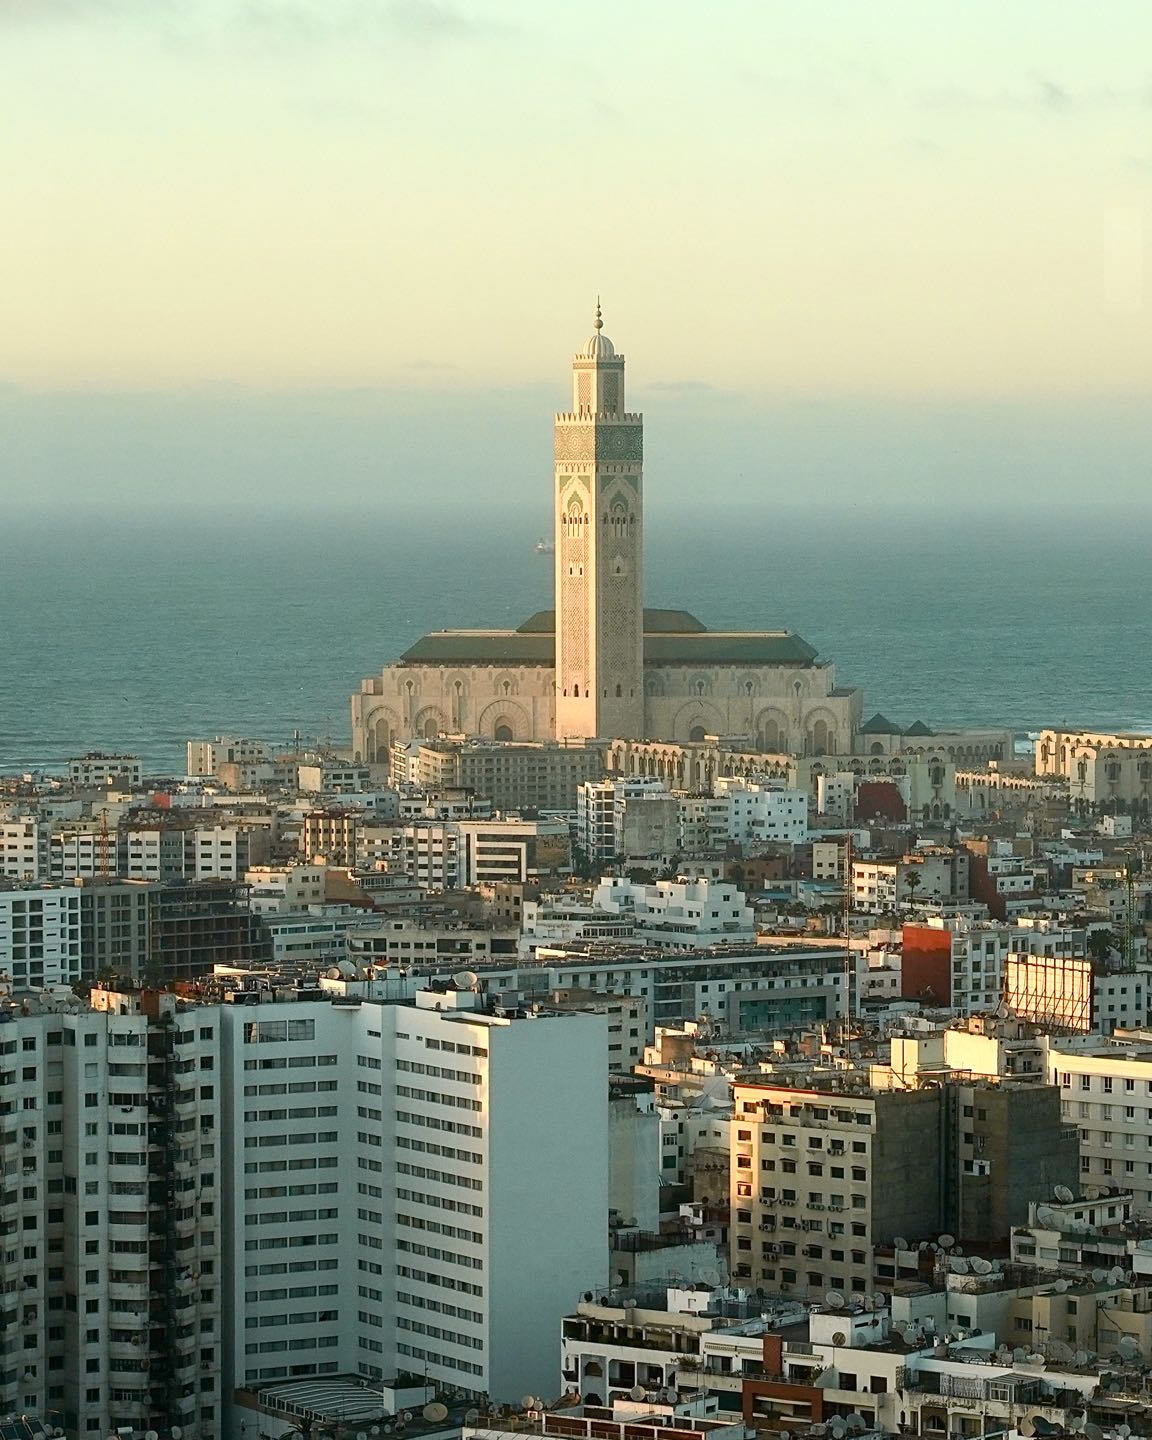 Panoramic view of Casablanca and the Hassan II Moque at sunset. Best views of Casablanca.